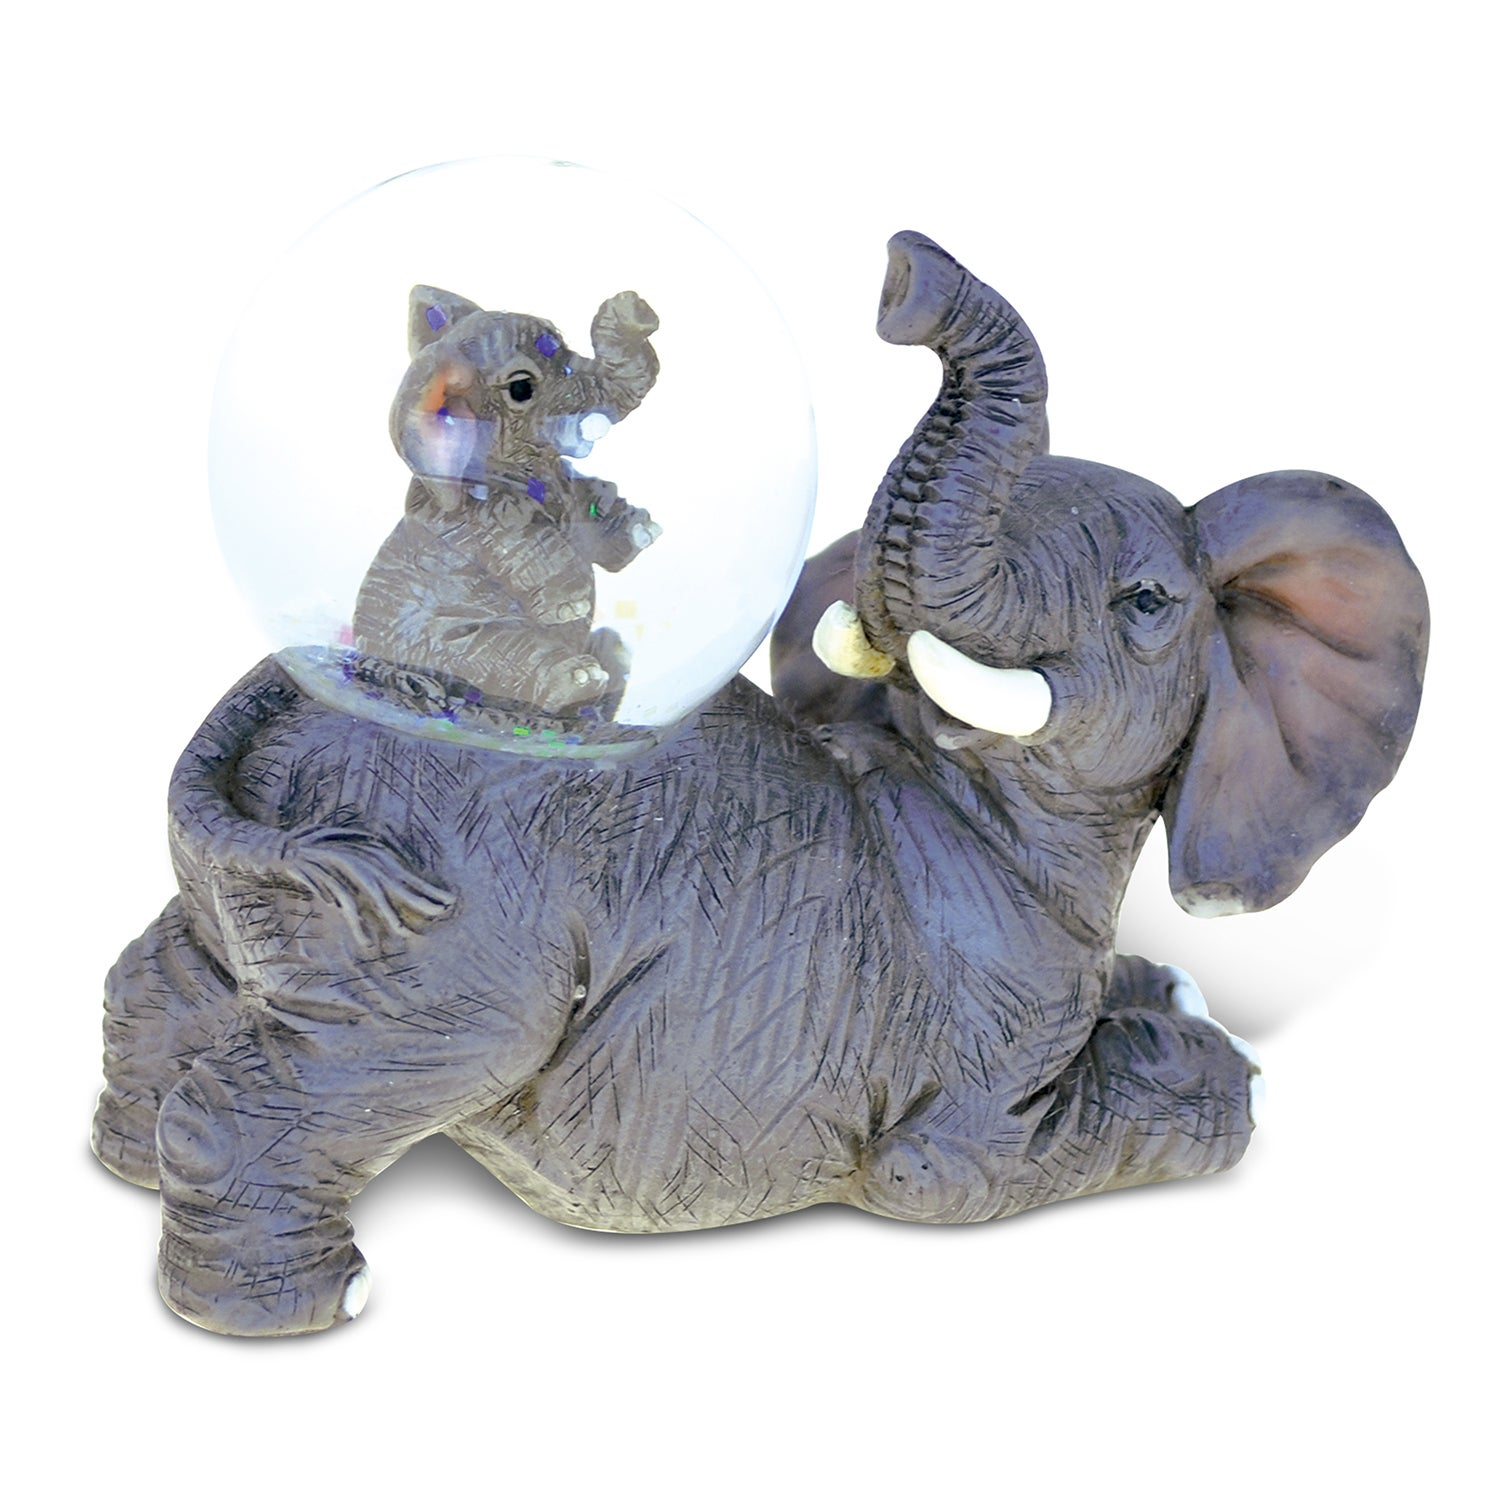 Puzzled Stone and Resin Elephant Snow Globe (Animal), Multi